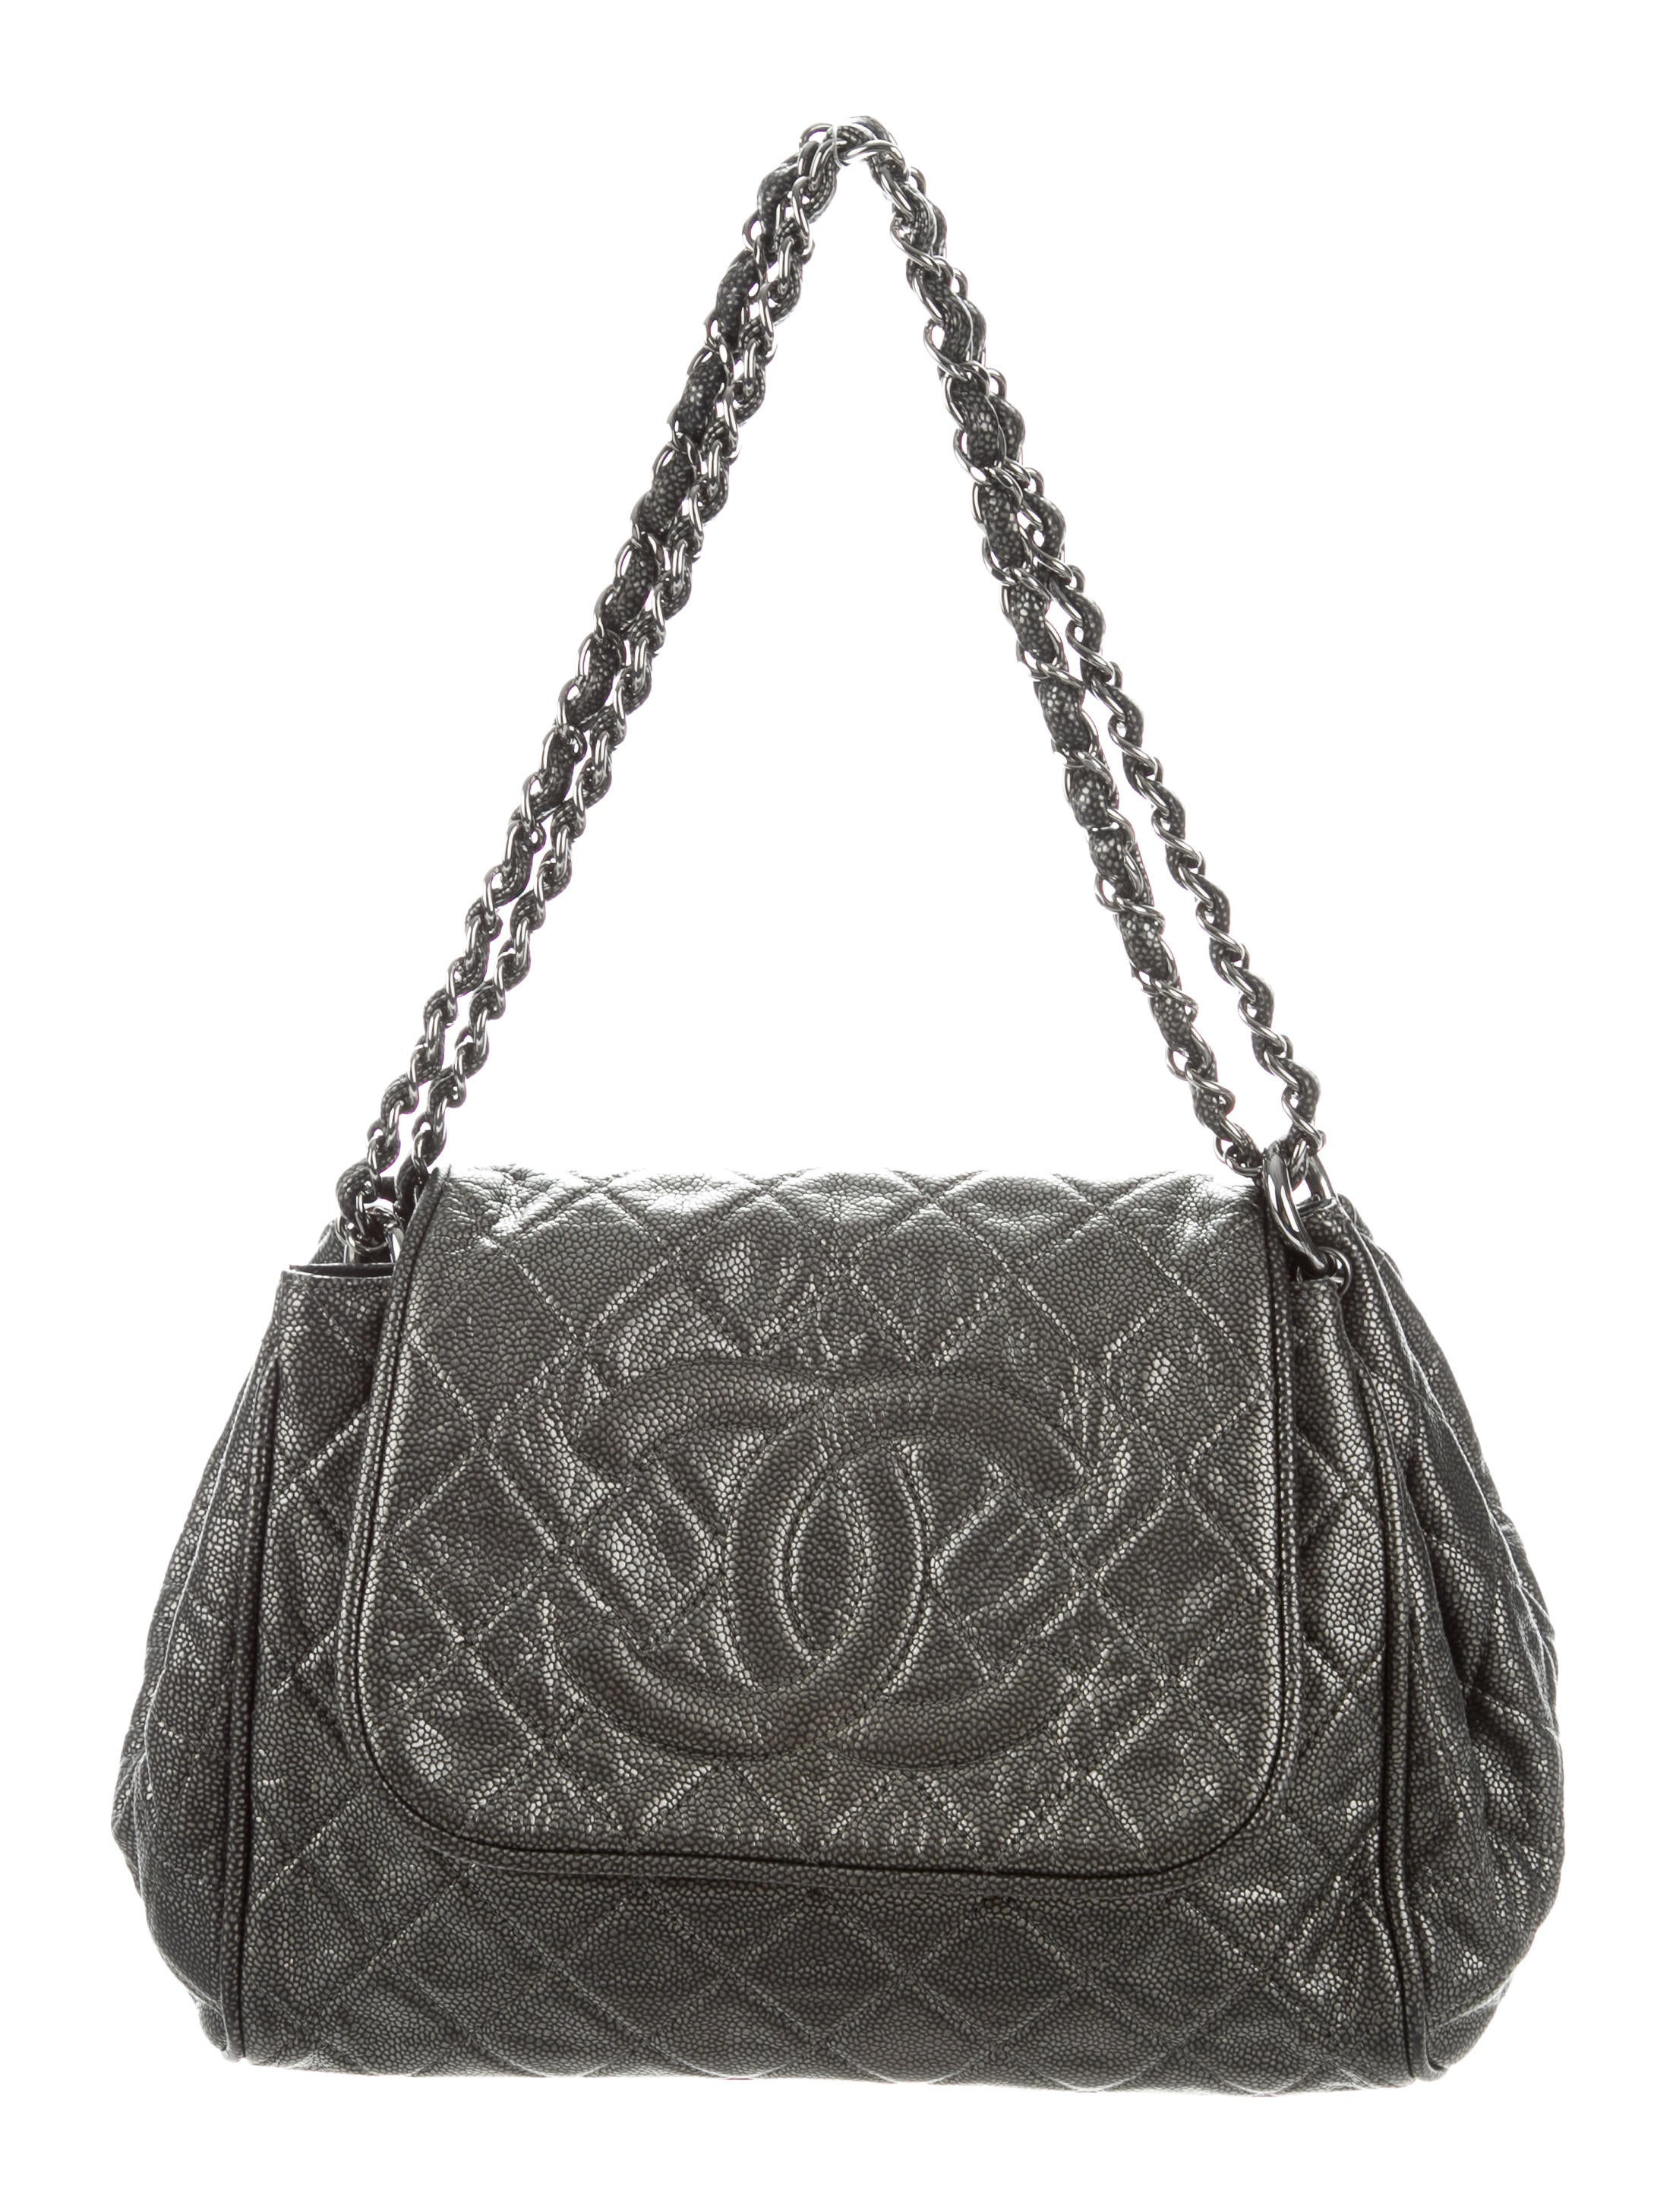 Chanel Timeless Accordion Flap Bag - Handbags - CHA332483  6a641fbb0f118